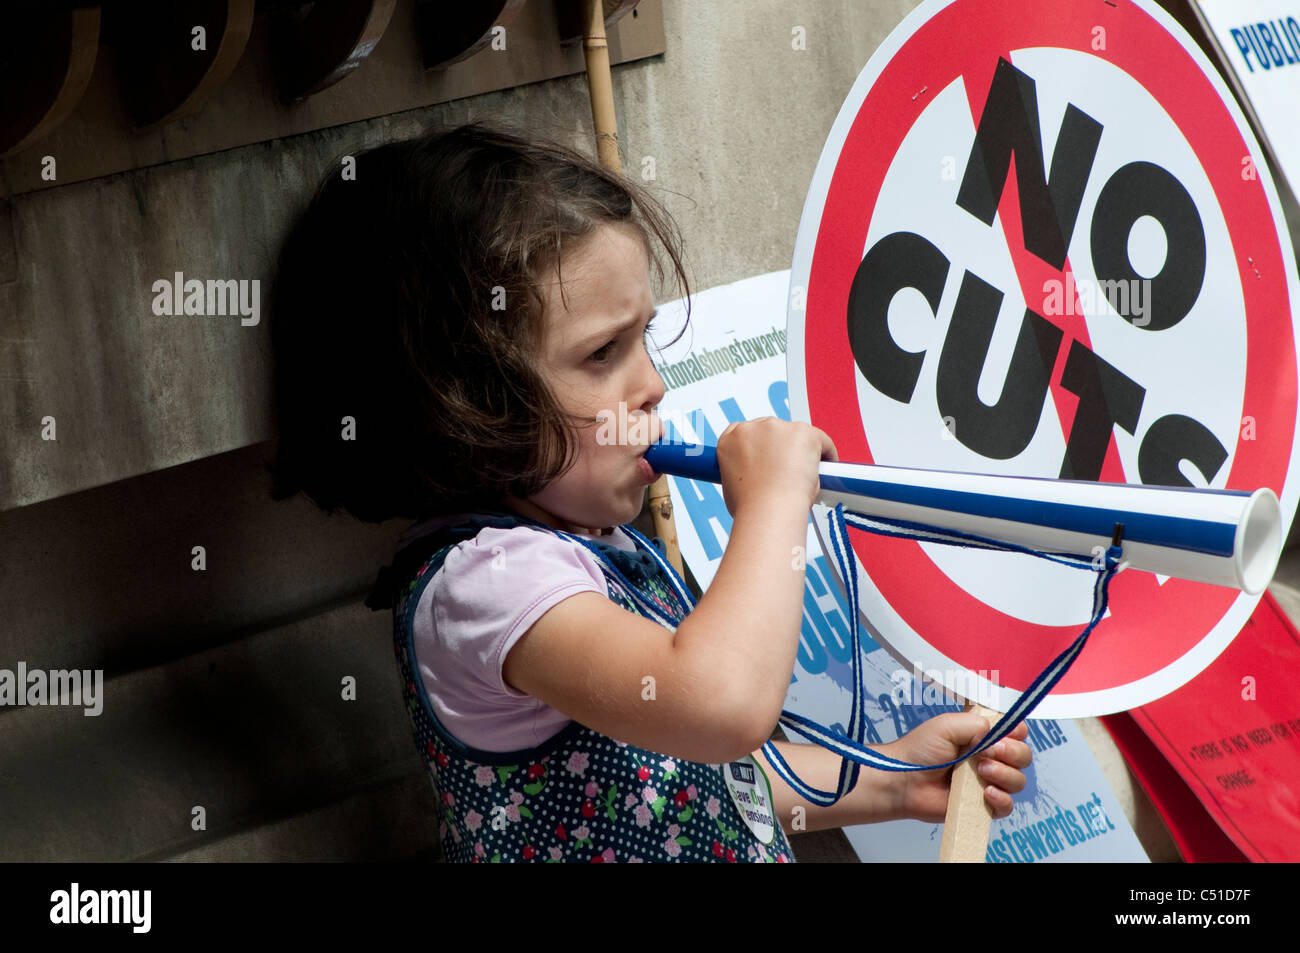 Public sector pensions strike, Placards and little girl, London, 30/06/2011, UK - Stock Image